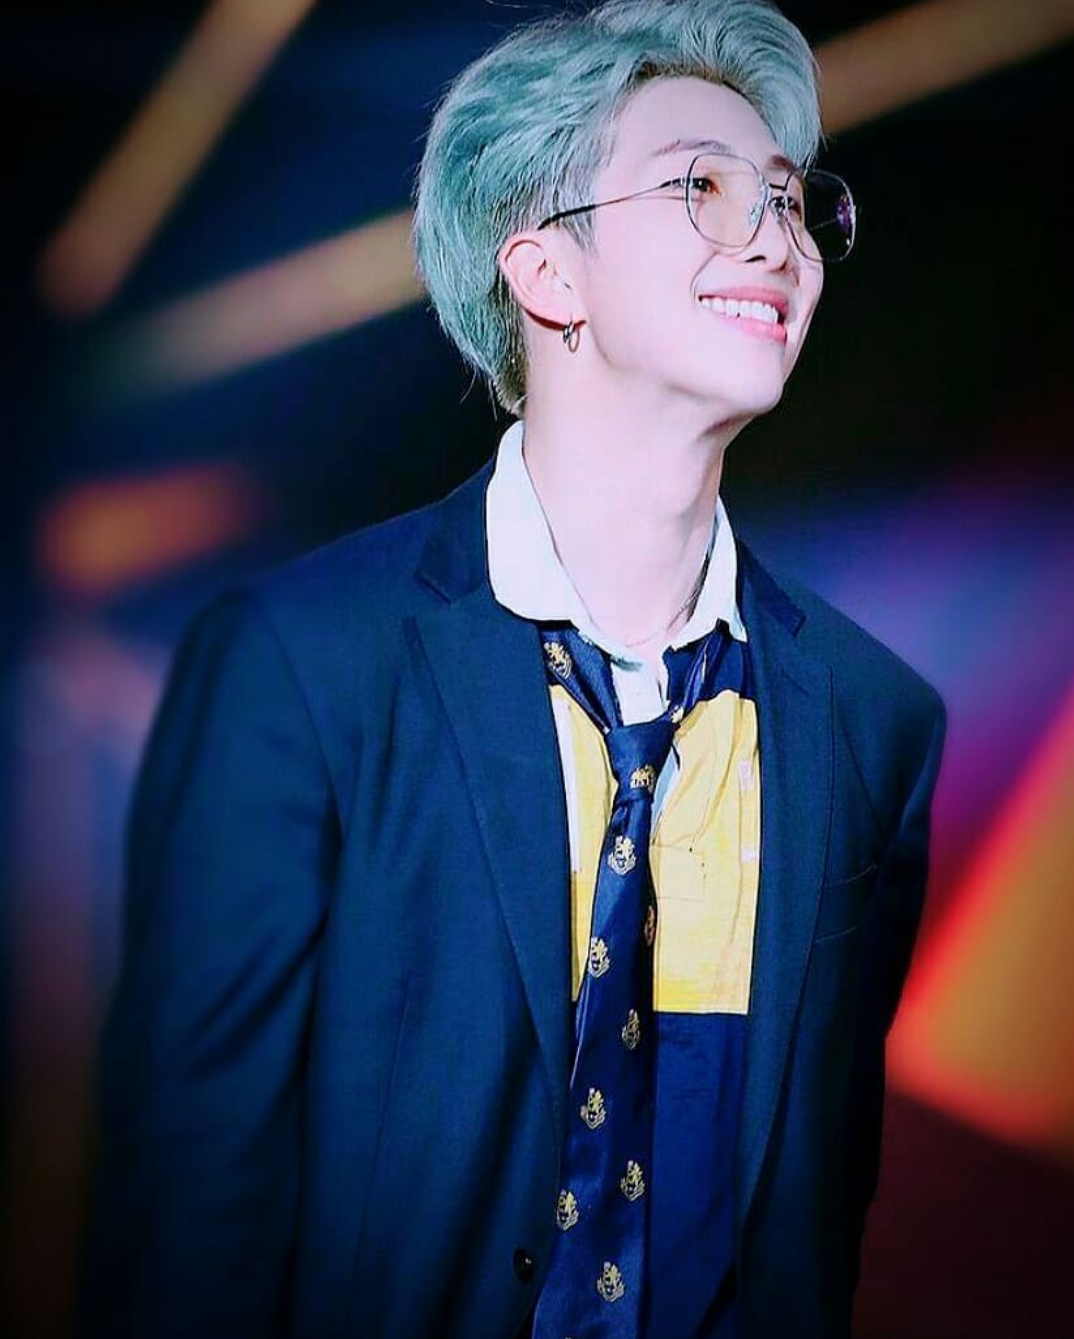 23 Is Kim Namjoon or RM from BTS handsome   Quora